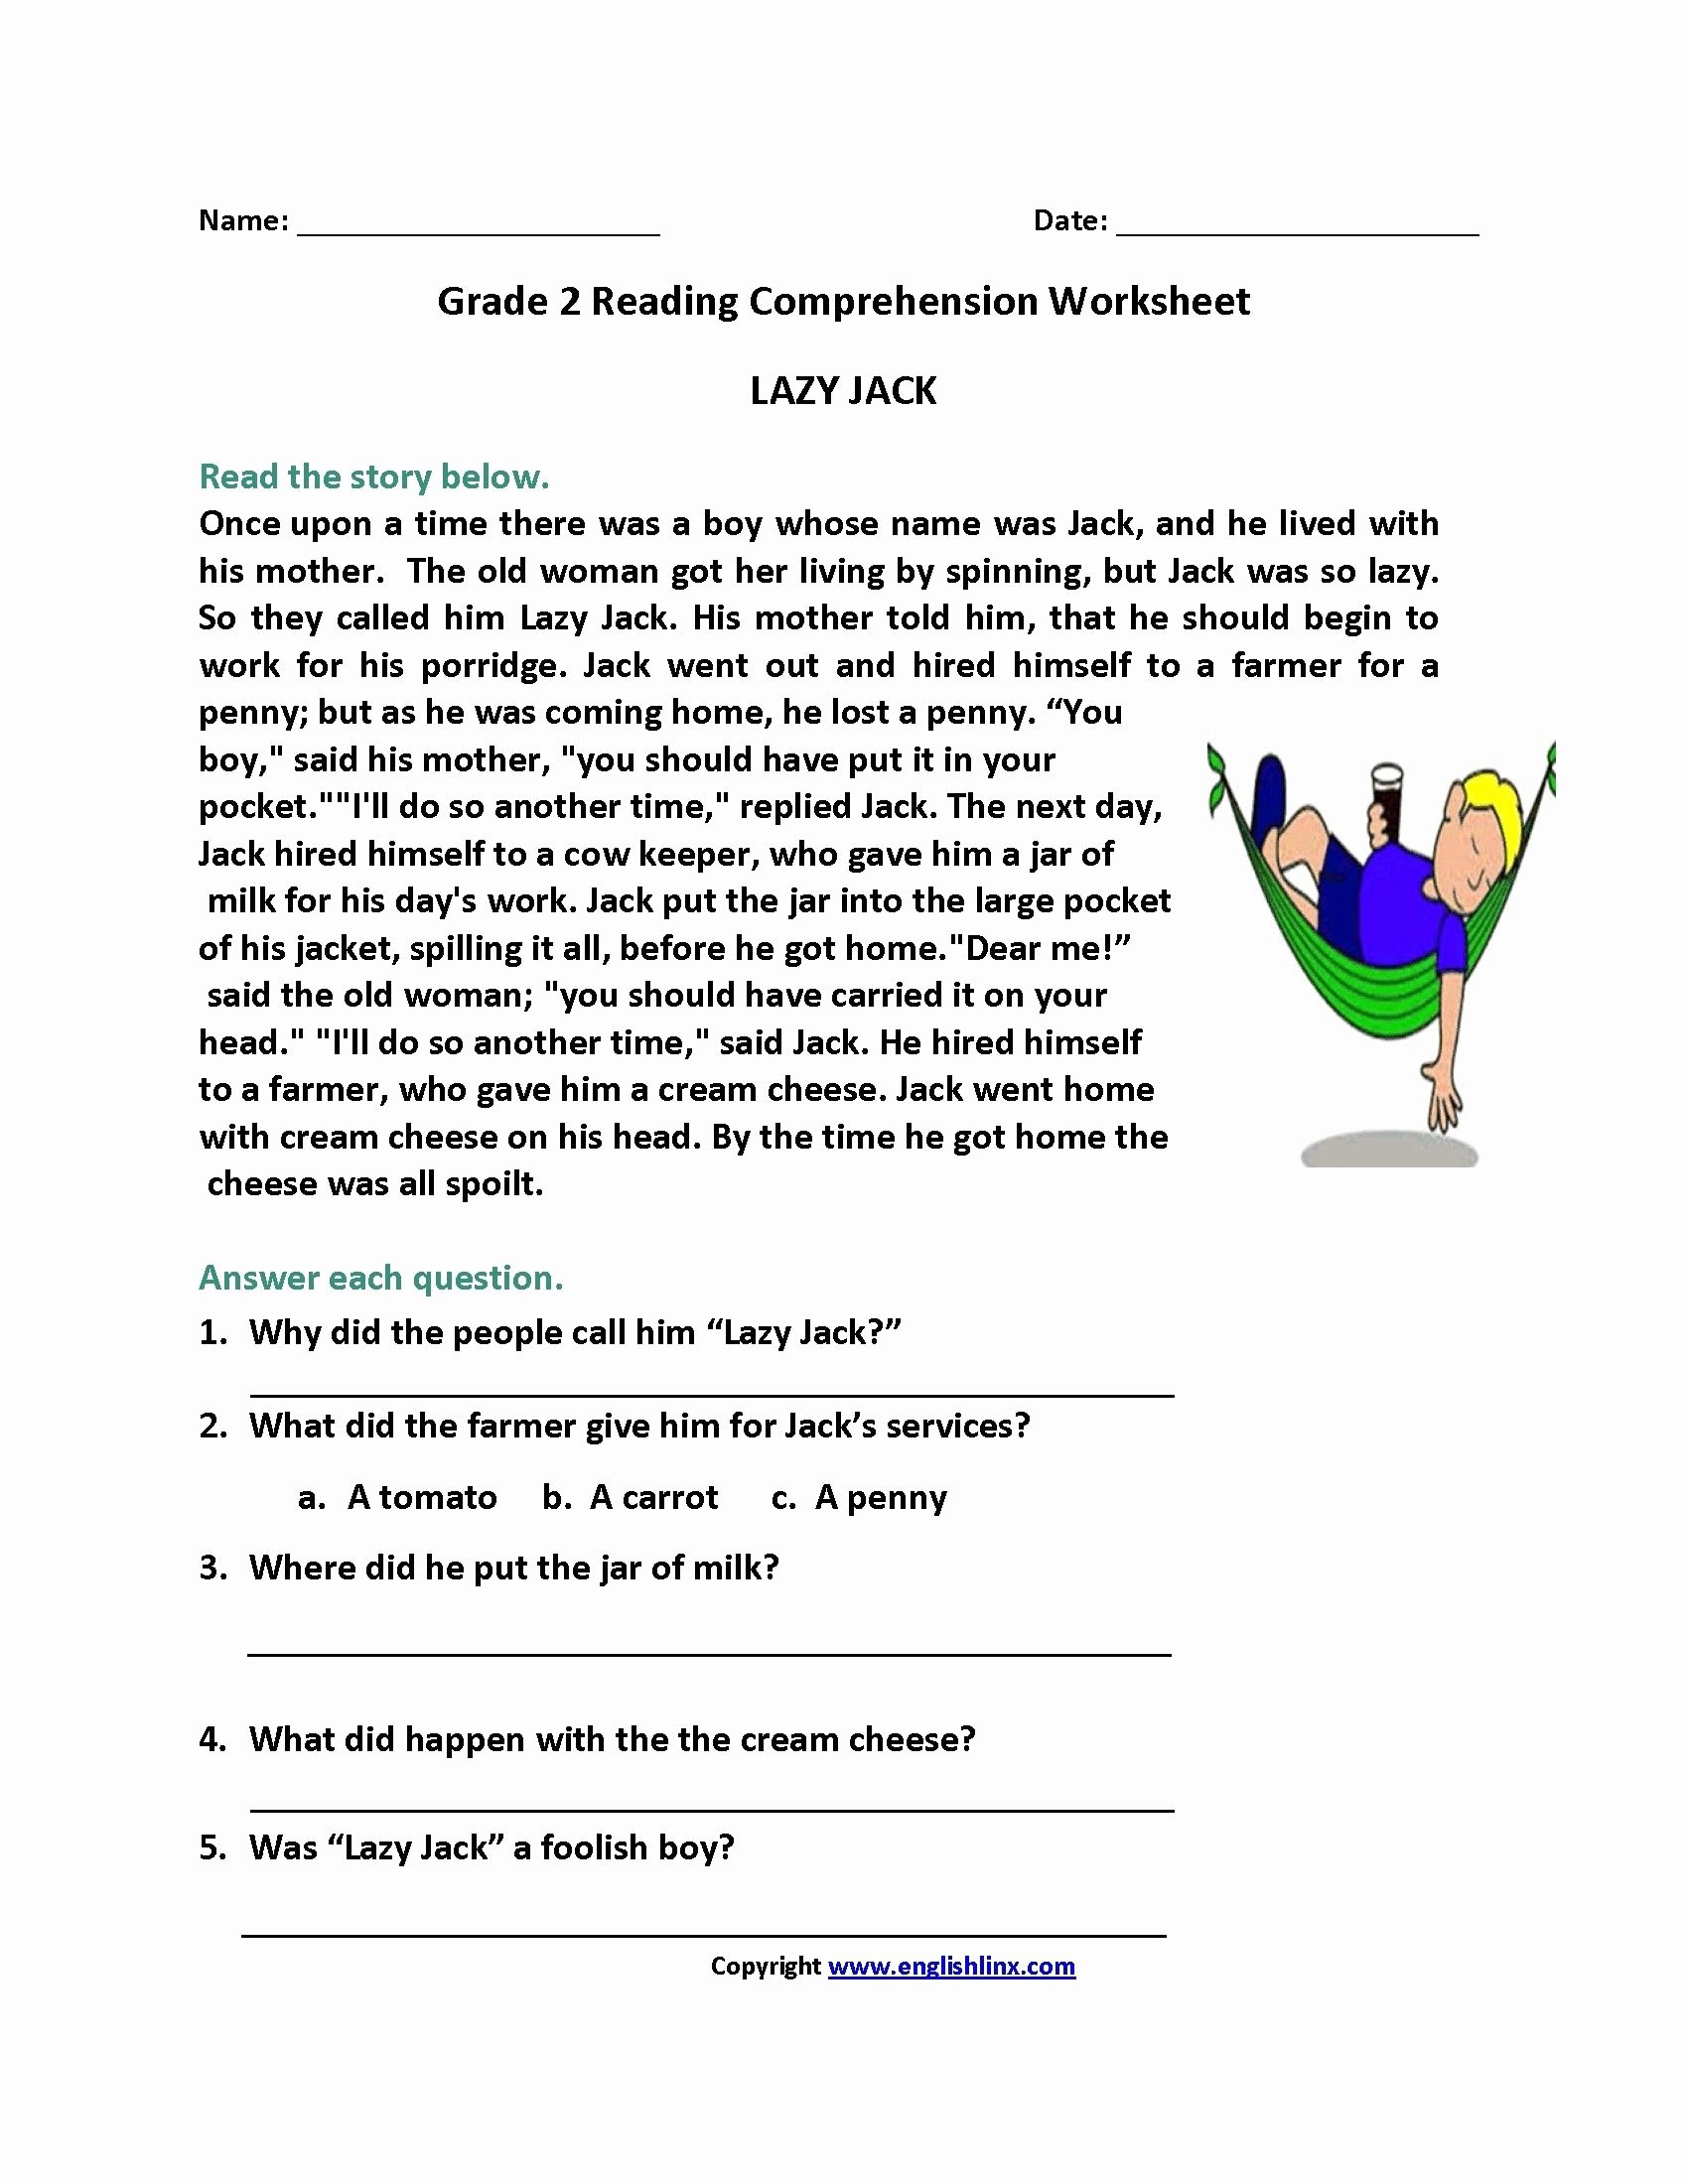 Comprehension Worksheets for Grade 2 New Printable Reading Prehension Worksheets for 2nd Graders